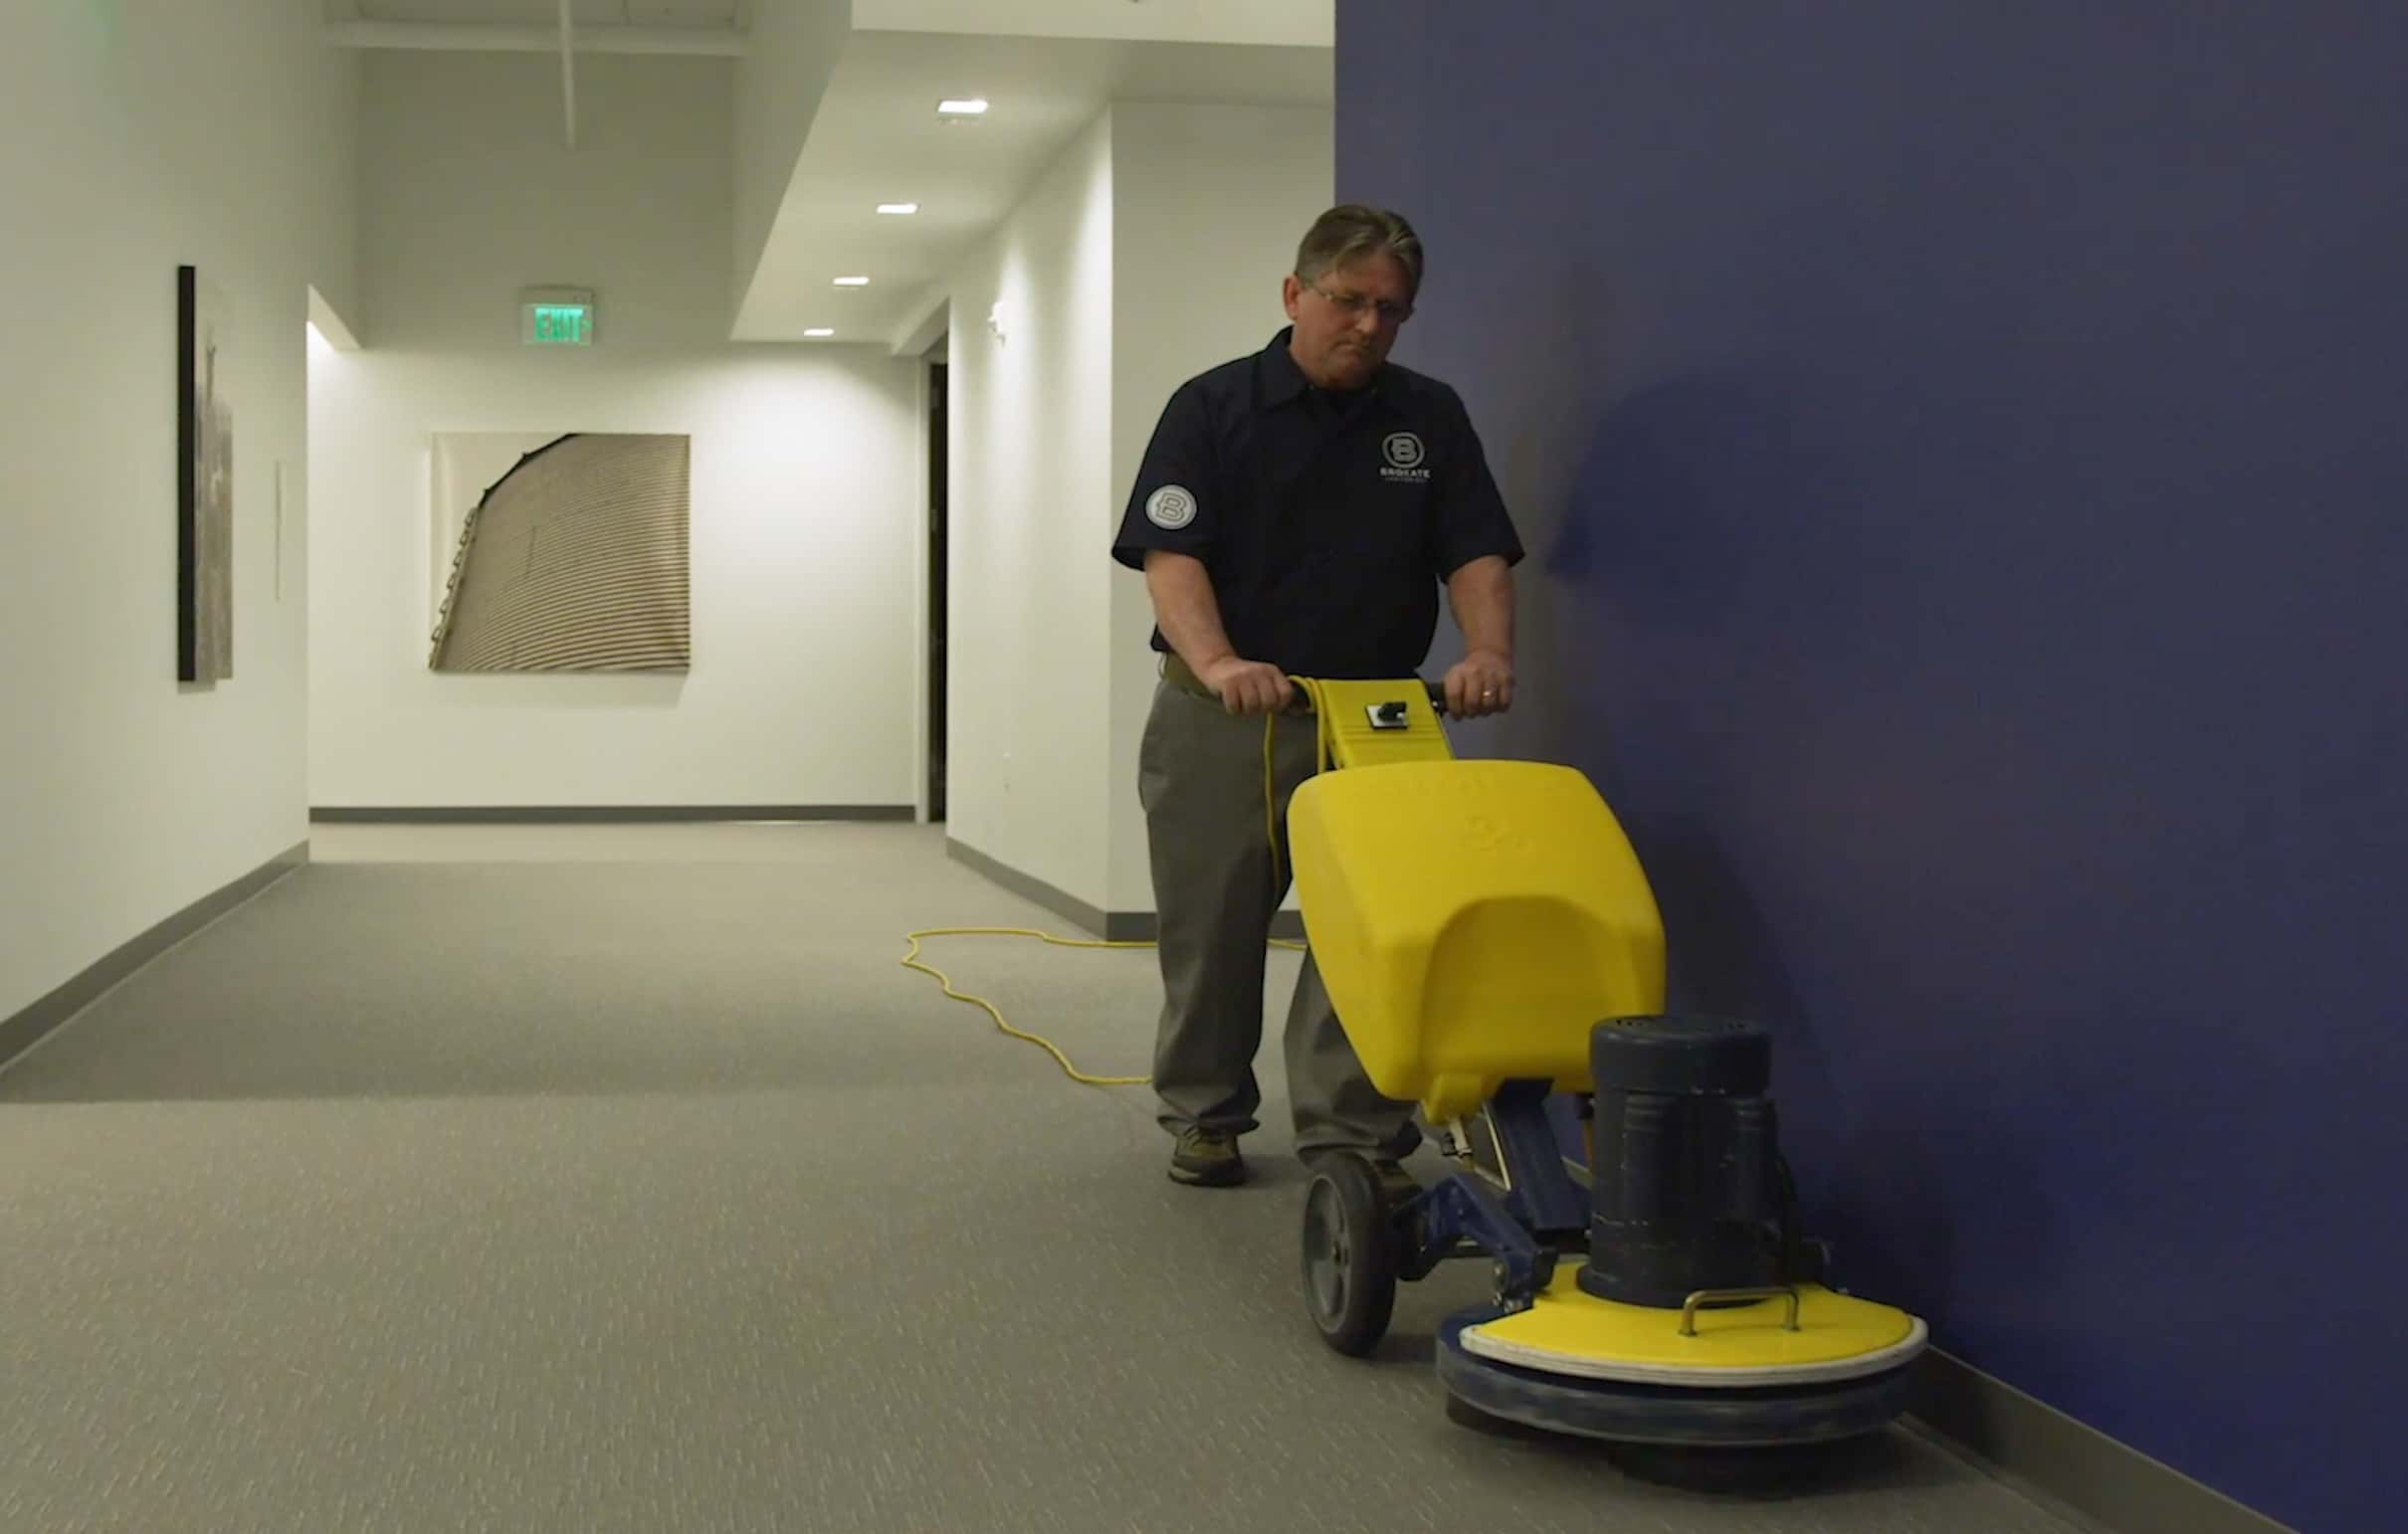 Brokate janitor using a carpet cleaning machine to clean a minimalist office